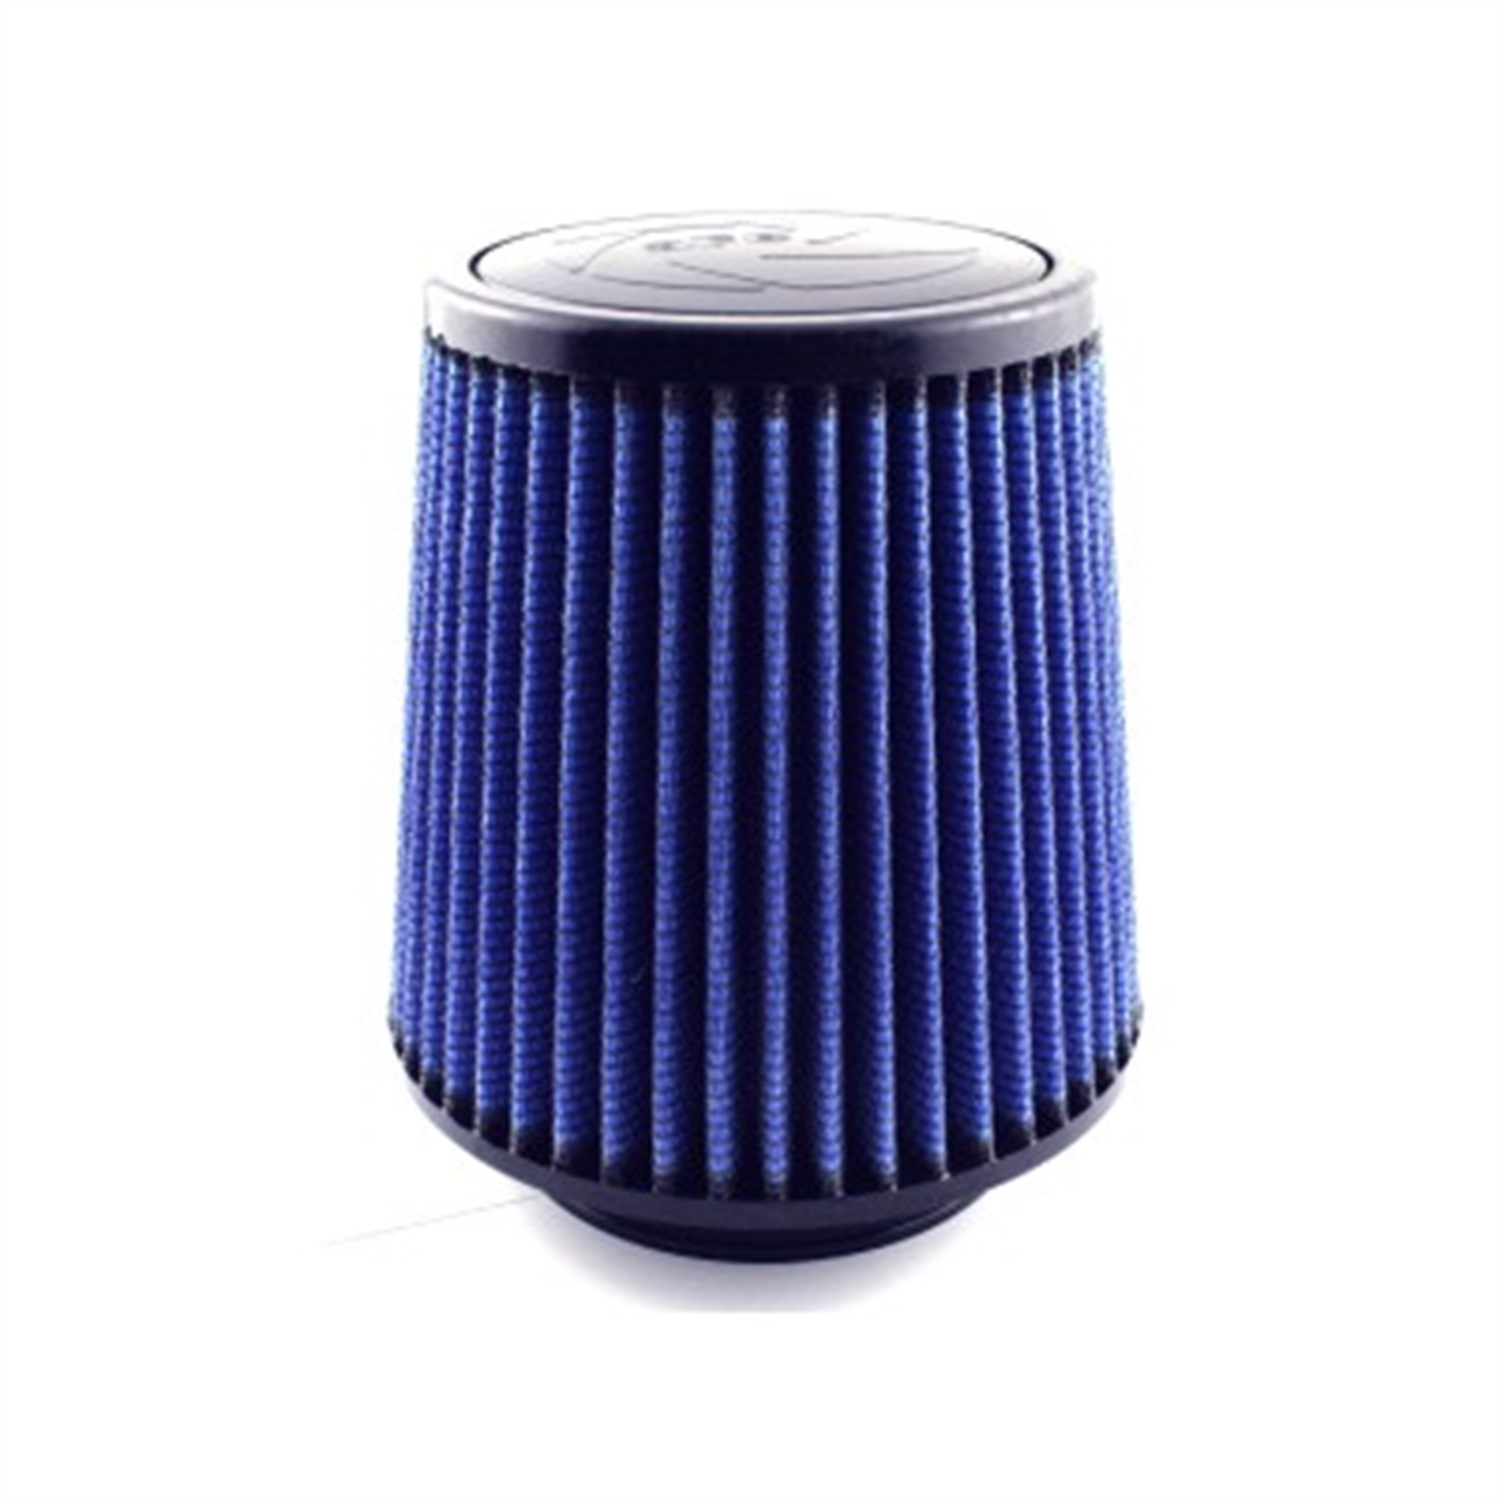 aFe Power 21-38505 MagnumFLOW Intake PRO DRY S Air Filter 21-38505